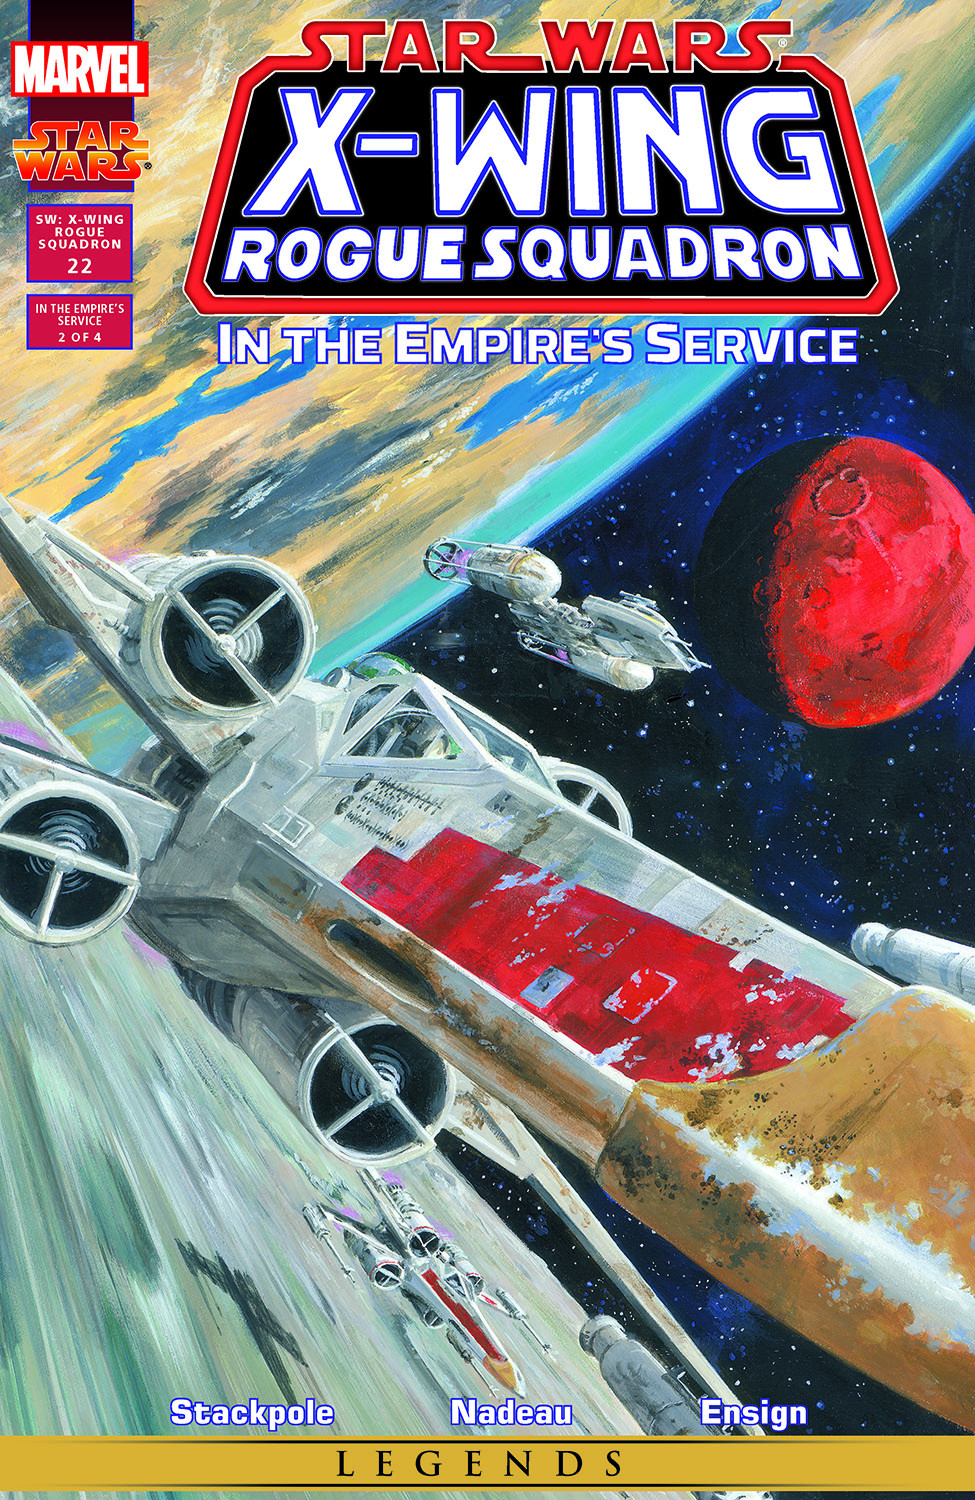 Comic Star Wars: X-Wing Rogue Squadron issue 23